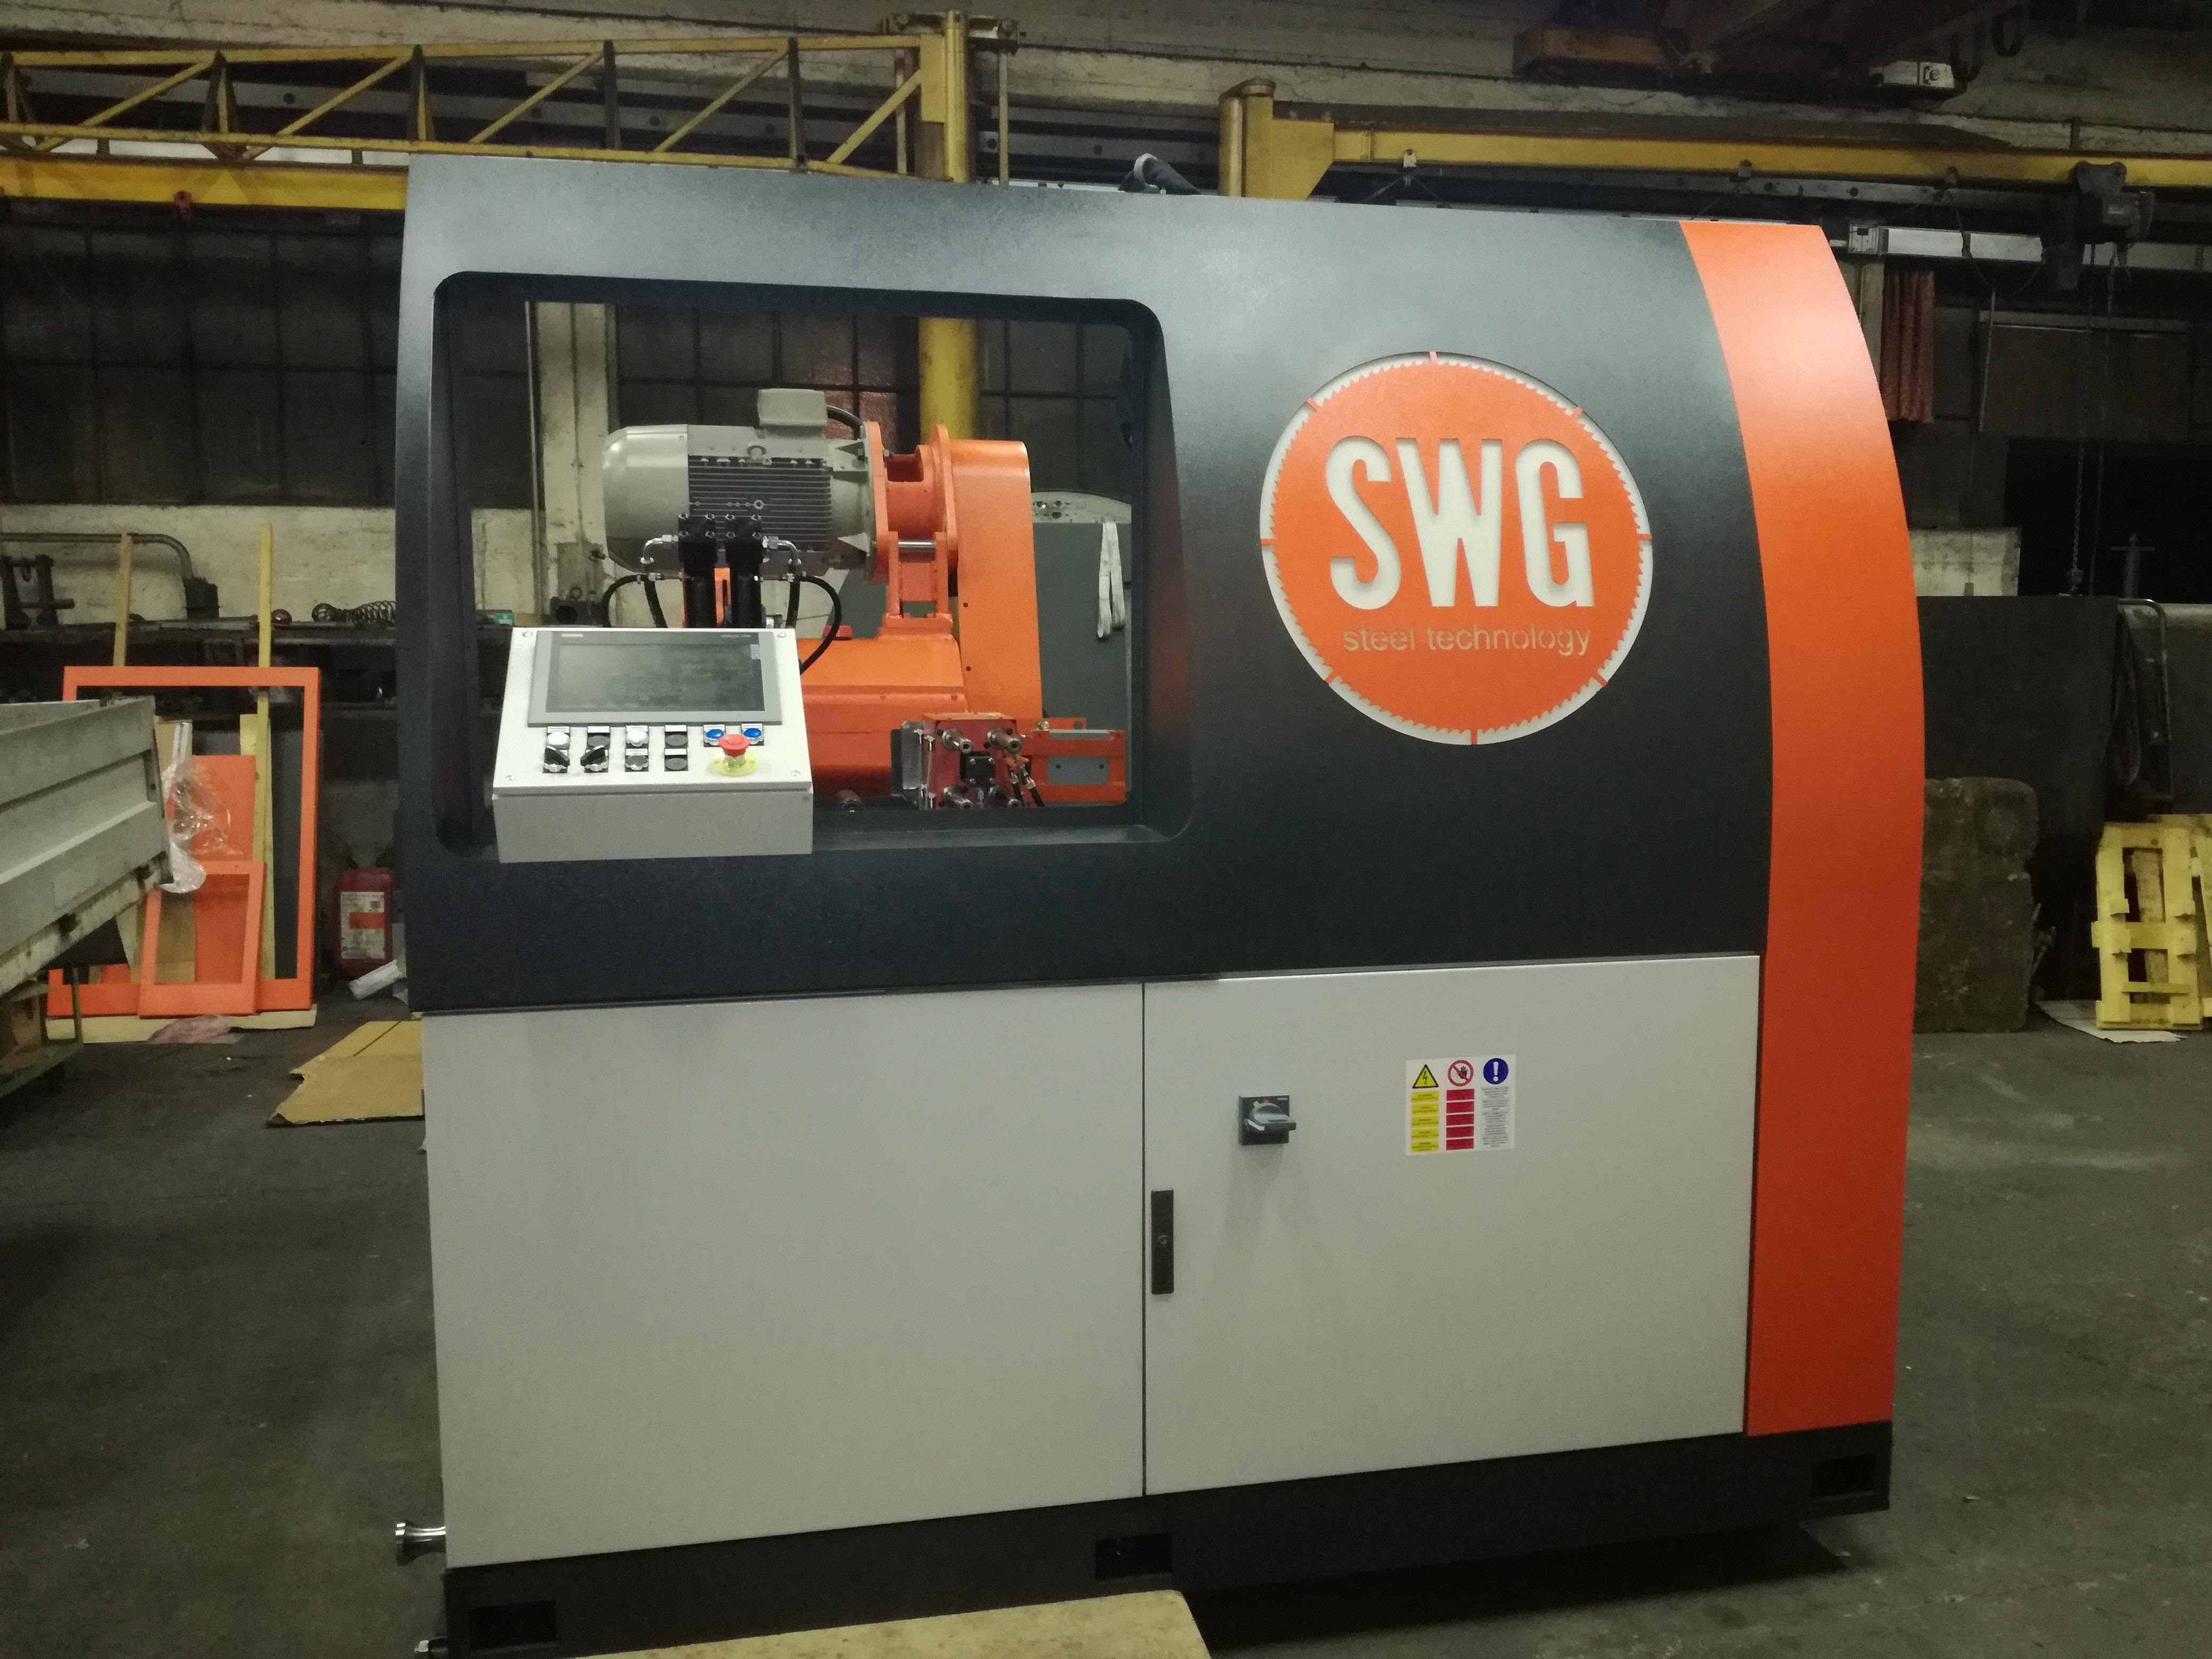 SWG Steel Technology srl